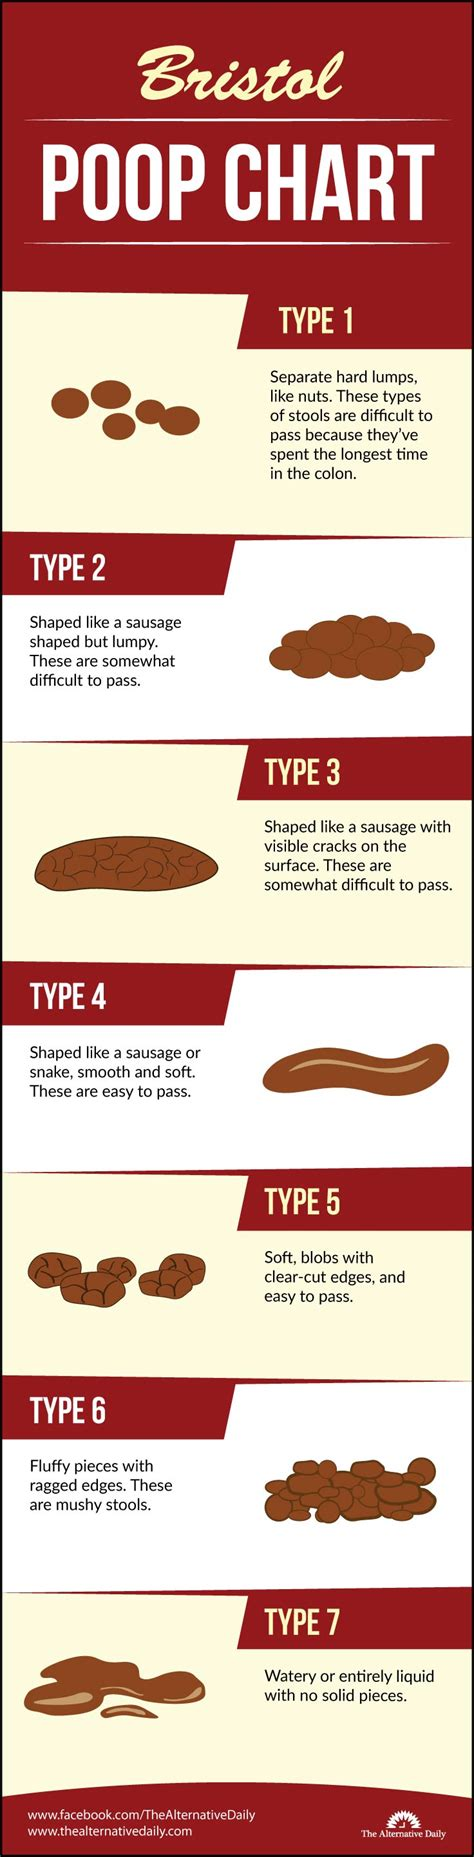 Bristol Poop Chart Which Of These 7 Types Of Poop Do You. Entrance Test For Nursing School. Vanille Patisserie Chicago New Car In Toyota. Divorce Lawyers In Pittsburgh Pa. Academic Article Writing Keepers Self Storage. Add Treatment In Children Kwik Kar Carrollton. Ssl Certificate Reviews Iron Mountain Weather. Maryland Business Search Home Digital Phones. Buy Consumer Email List All Recipes Dog Treats